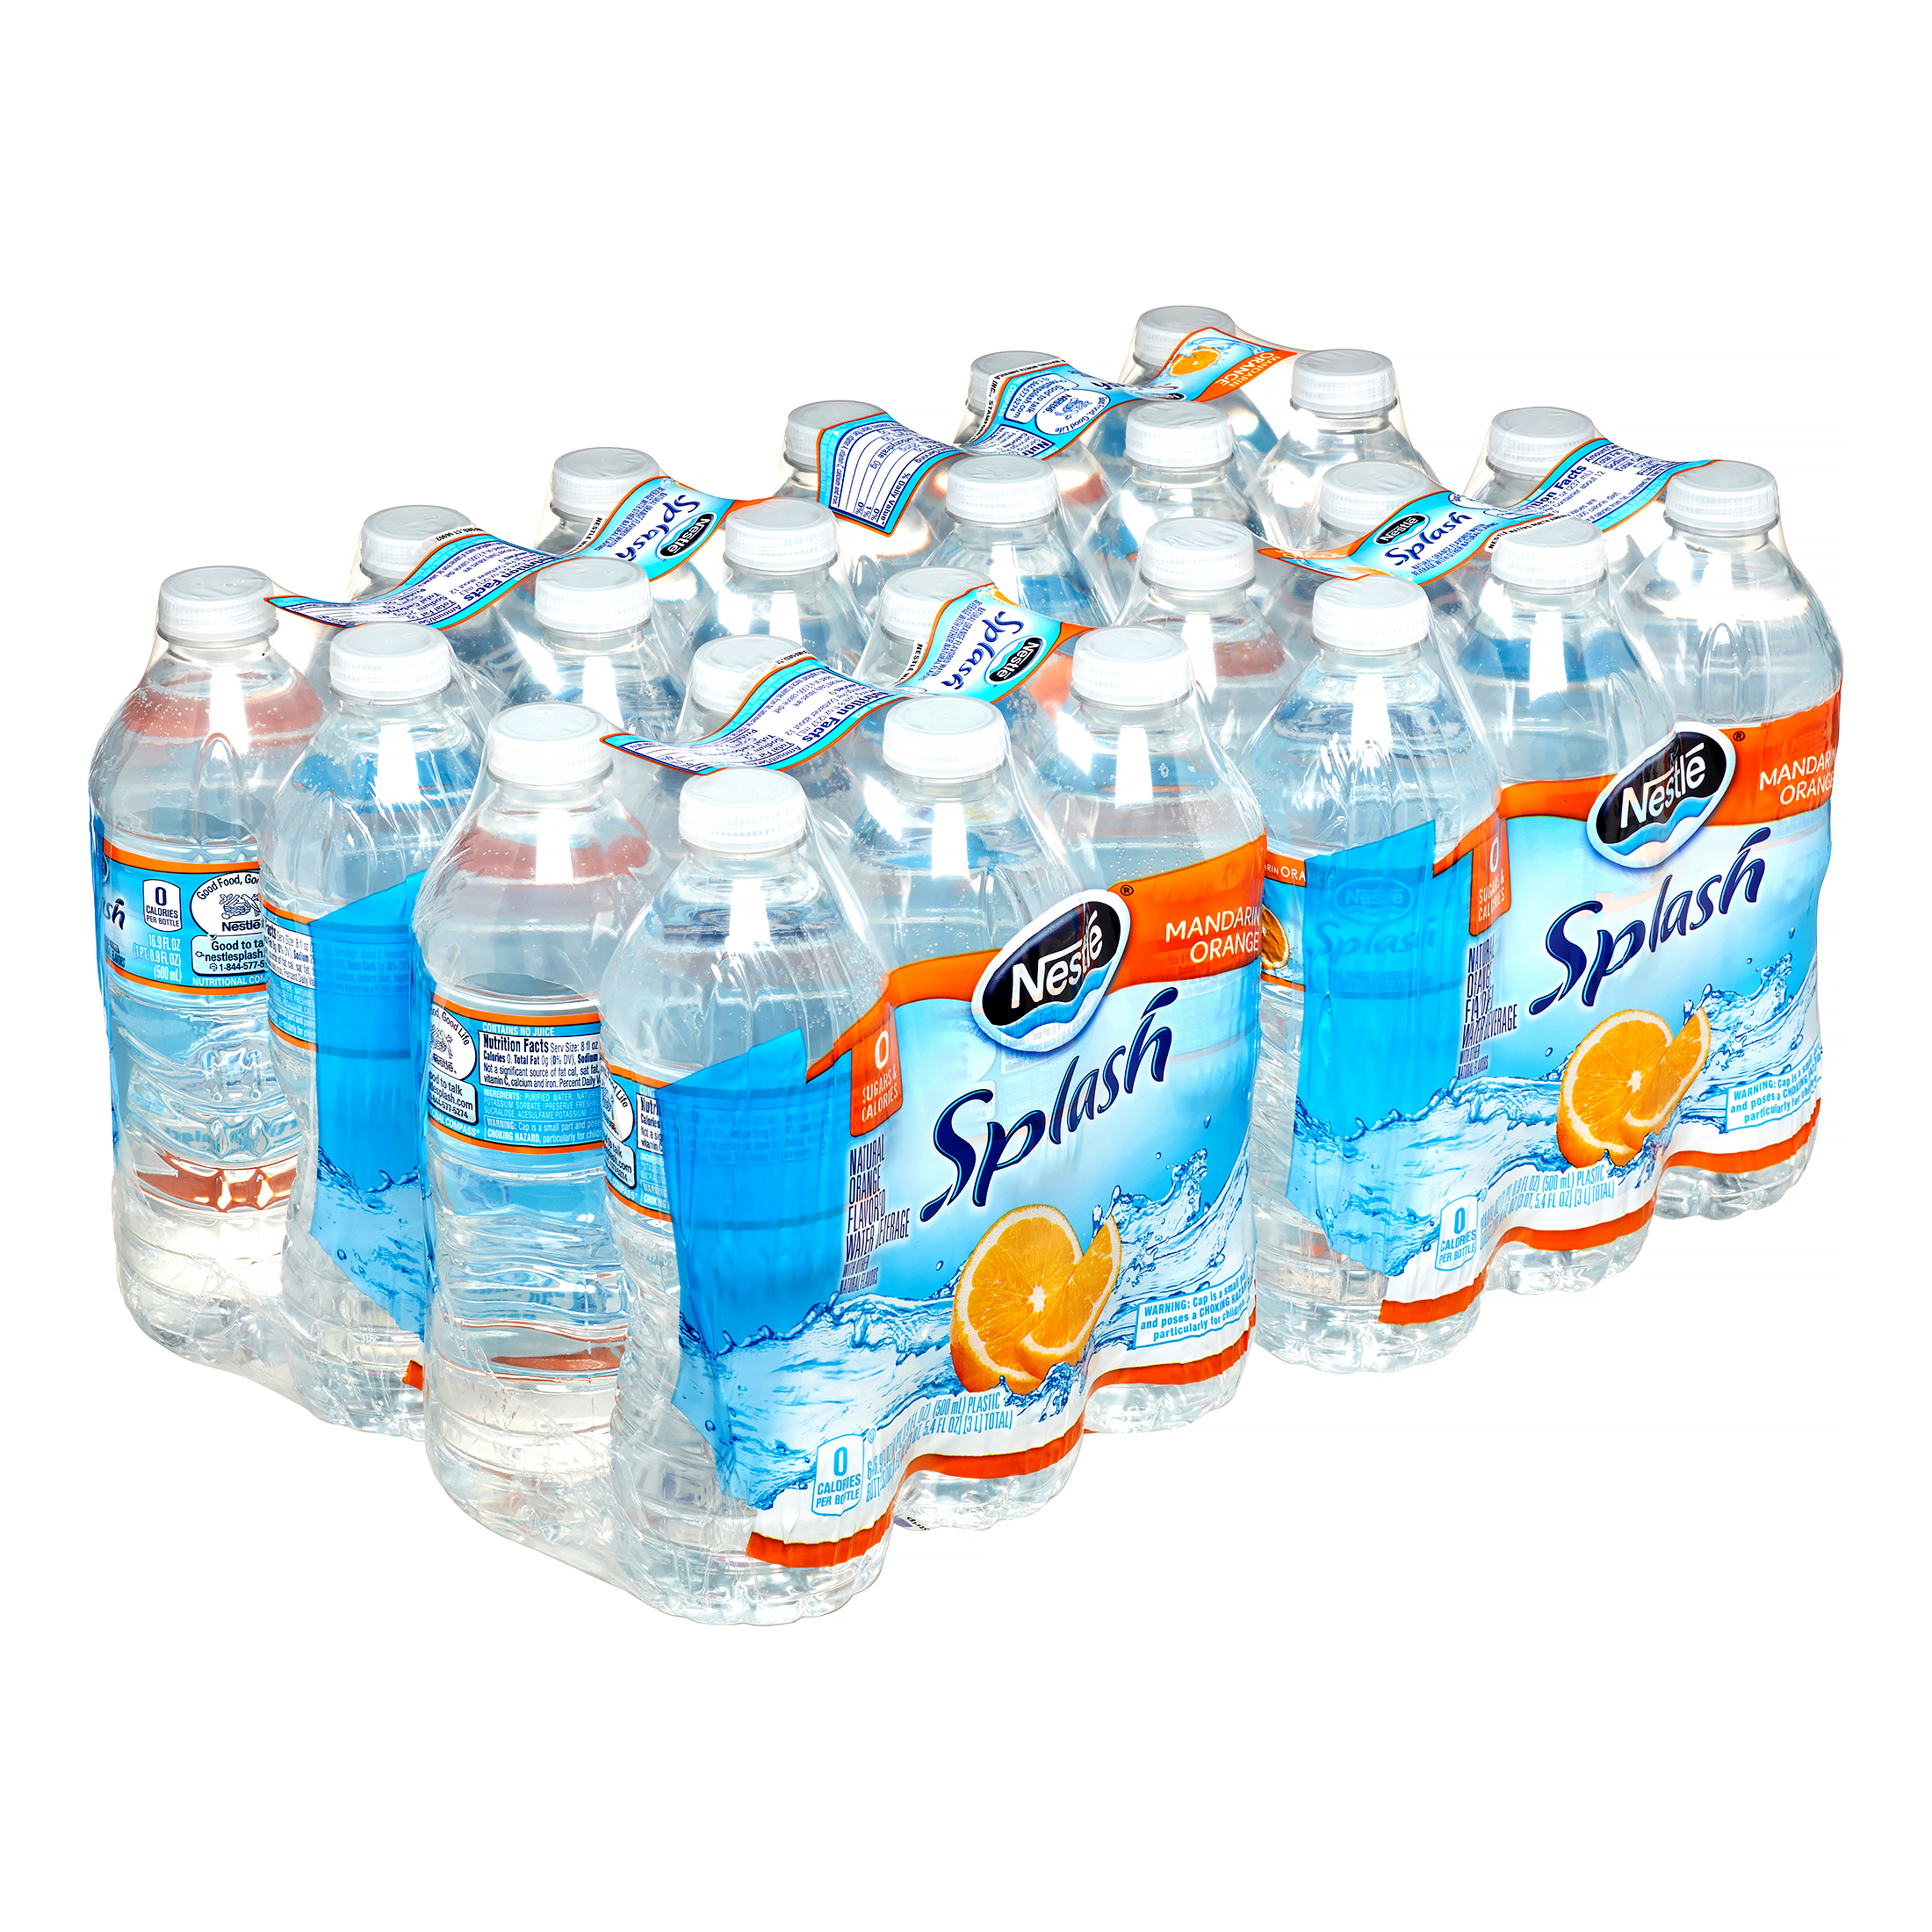 Nestle Splash Water, Mandarin Orange, 16.9 Fl Oz, 24 Count